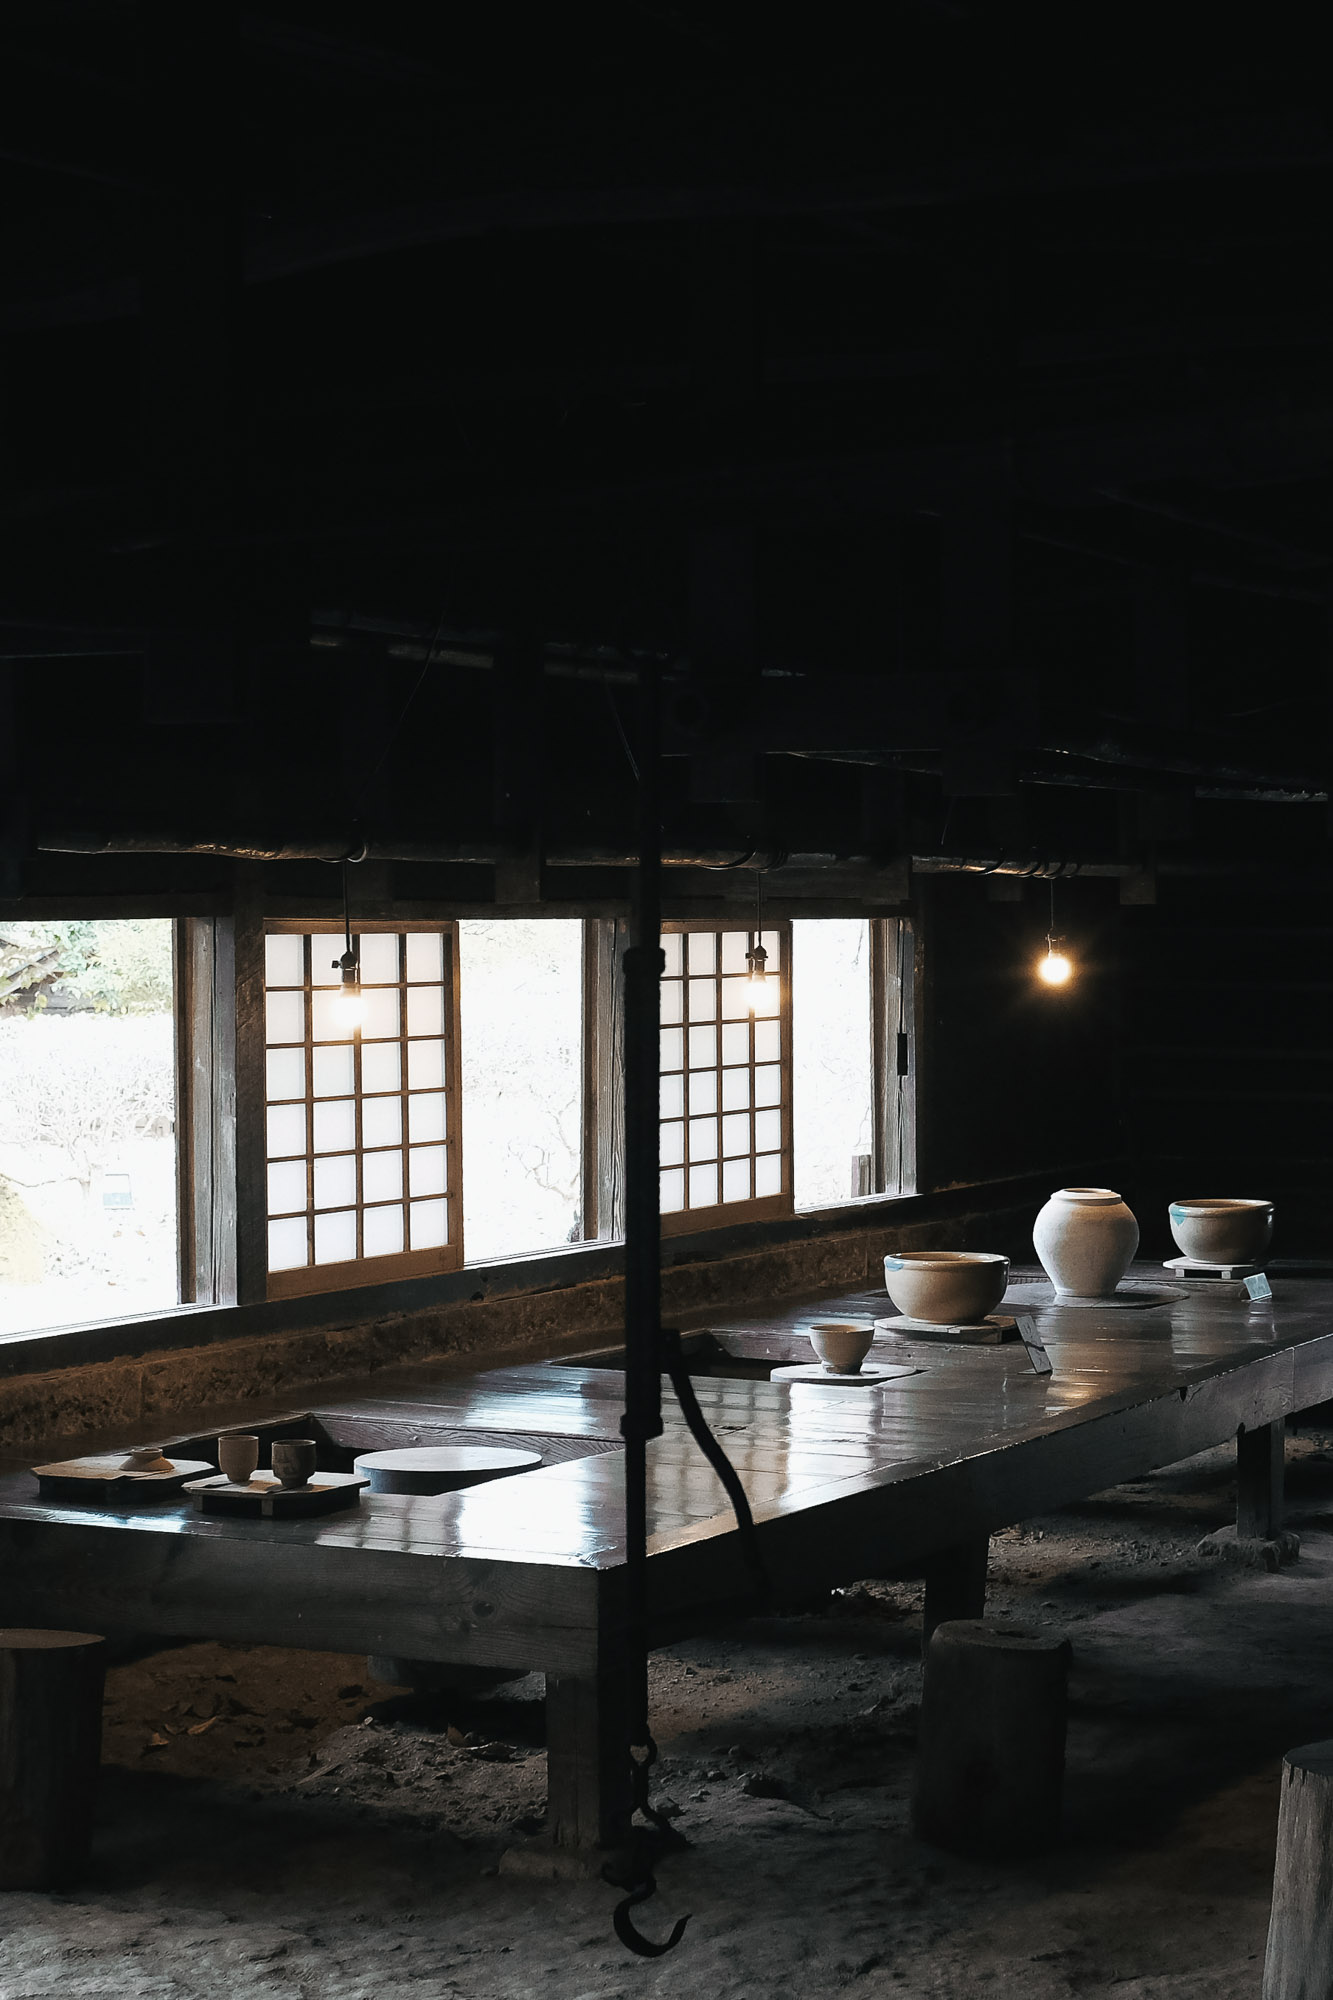 Hamada's pottery studio is adjacent to his home. He usually worked seated and would spin his potter's wheel with the help of a stick. The clay could then be shaped with his hands while there was still enough momentum in the wheel.